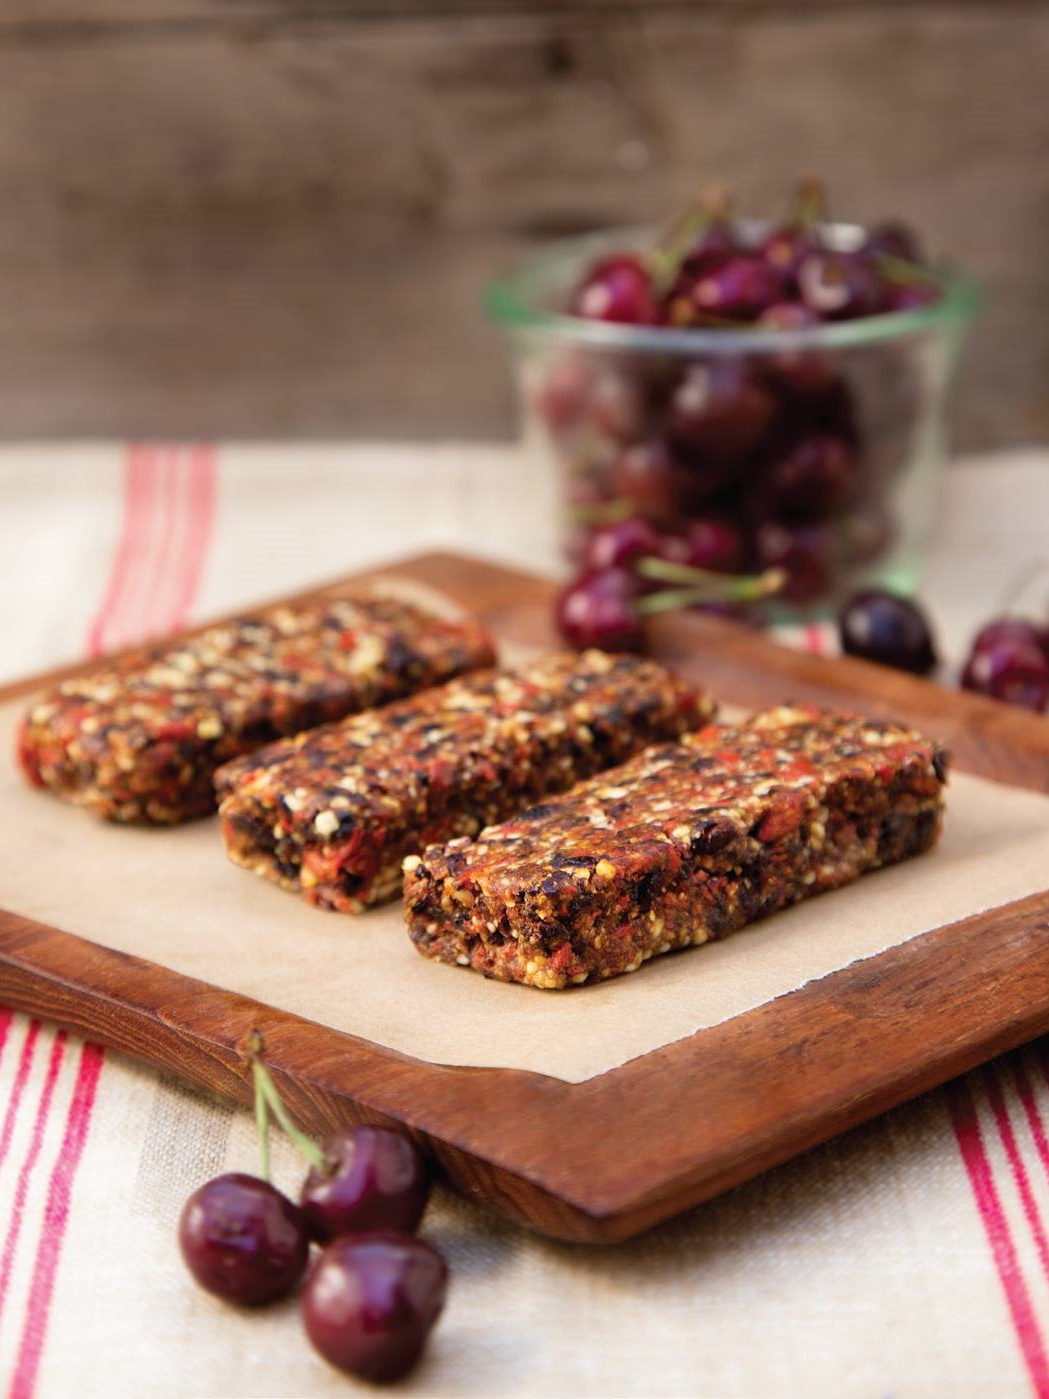 Raw Superfood Energy Bars - Naturally vegan, gluten-free, dairy-free and paleo, these sweet, healthy bars are rich with antioxidants and spiked with three sweet soulmates: cherries, goji berries and cacao.